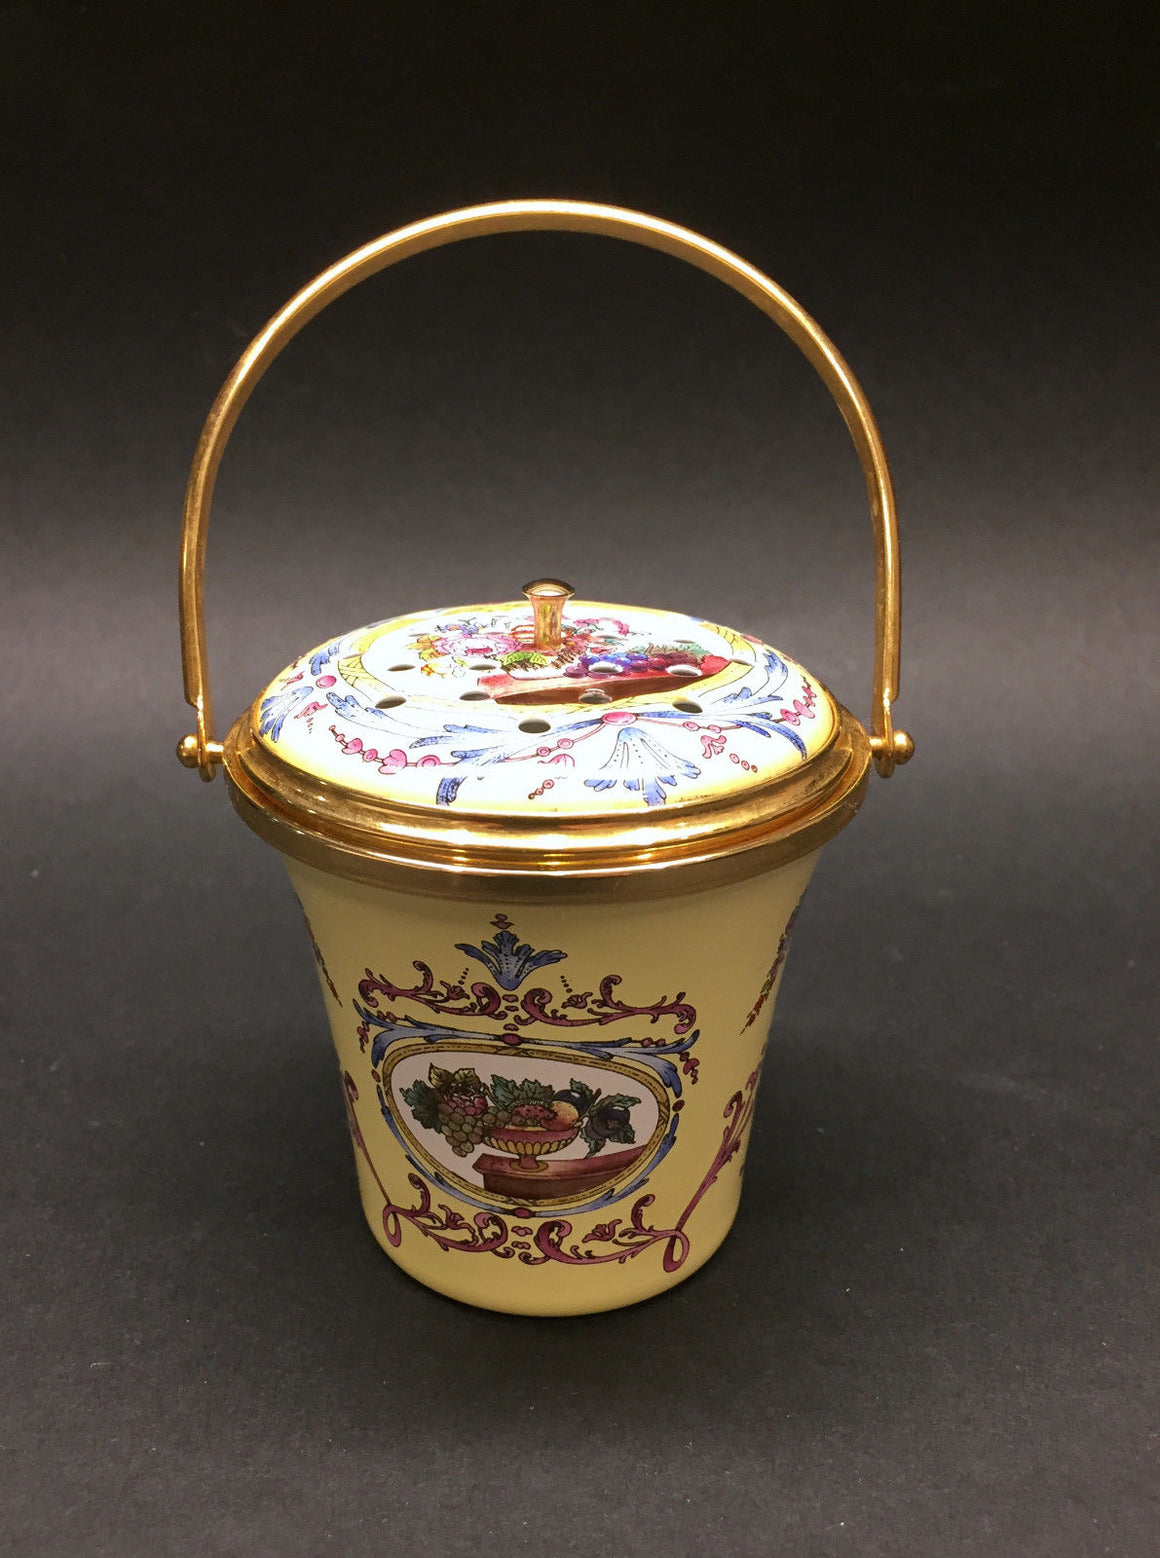 bisbiz.com HALCYON DAYS ENAMELS  VINTAGE Yellow/Multi-Color Enameled Perfume Diffuser Bucket - Bis Luxury Resale